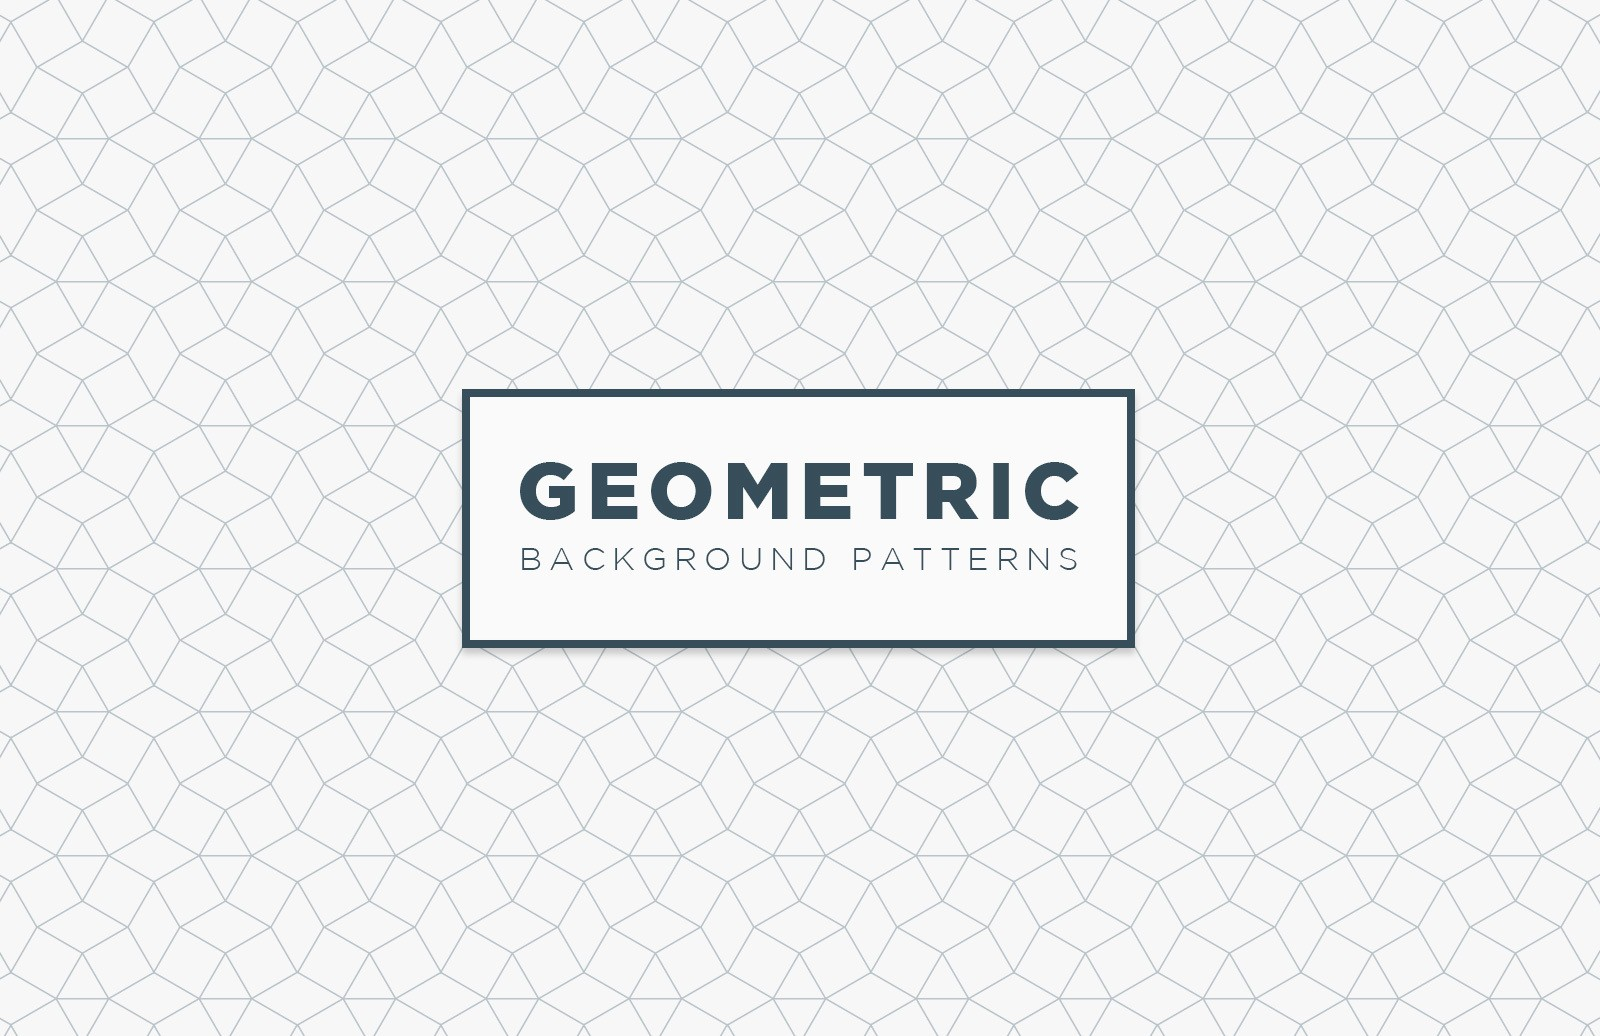 Geometric Background Patterns